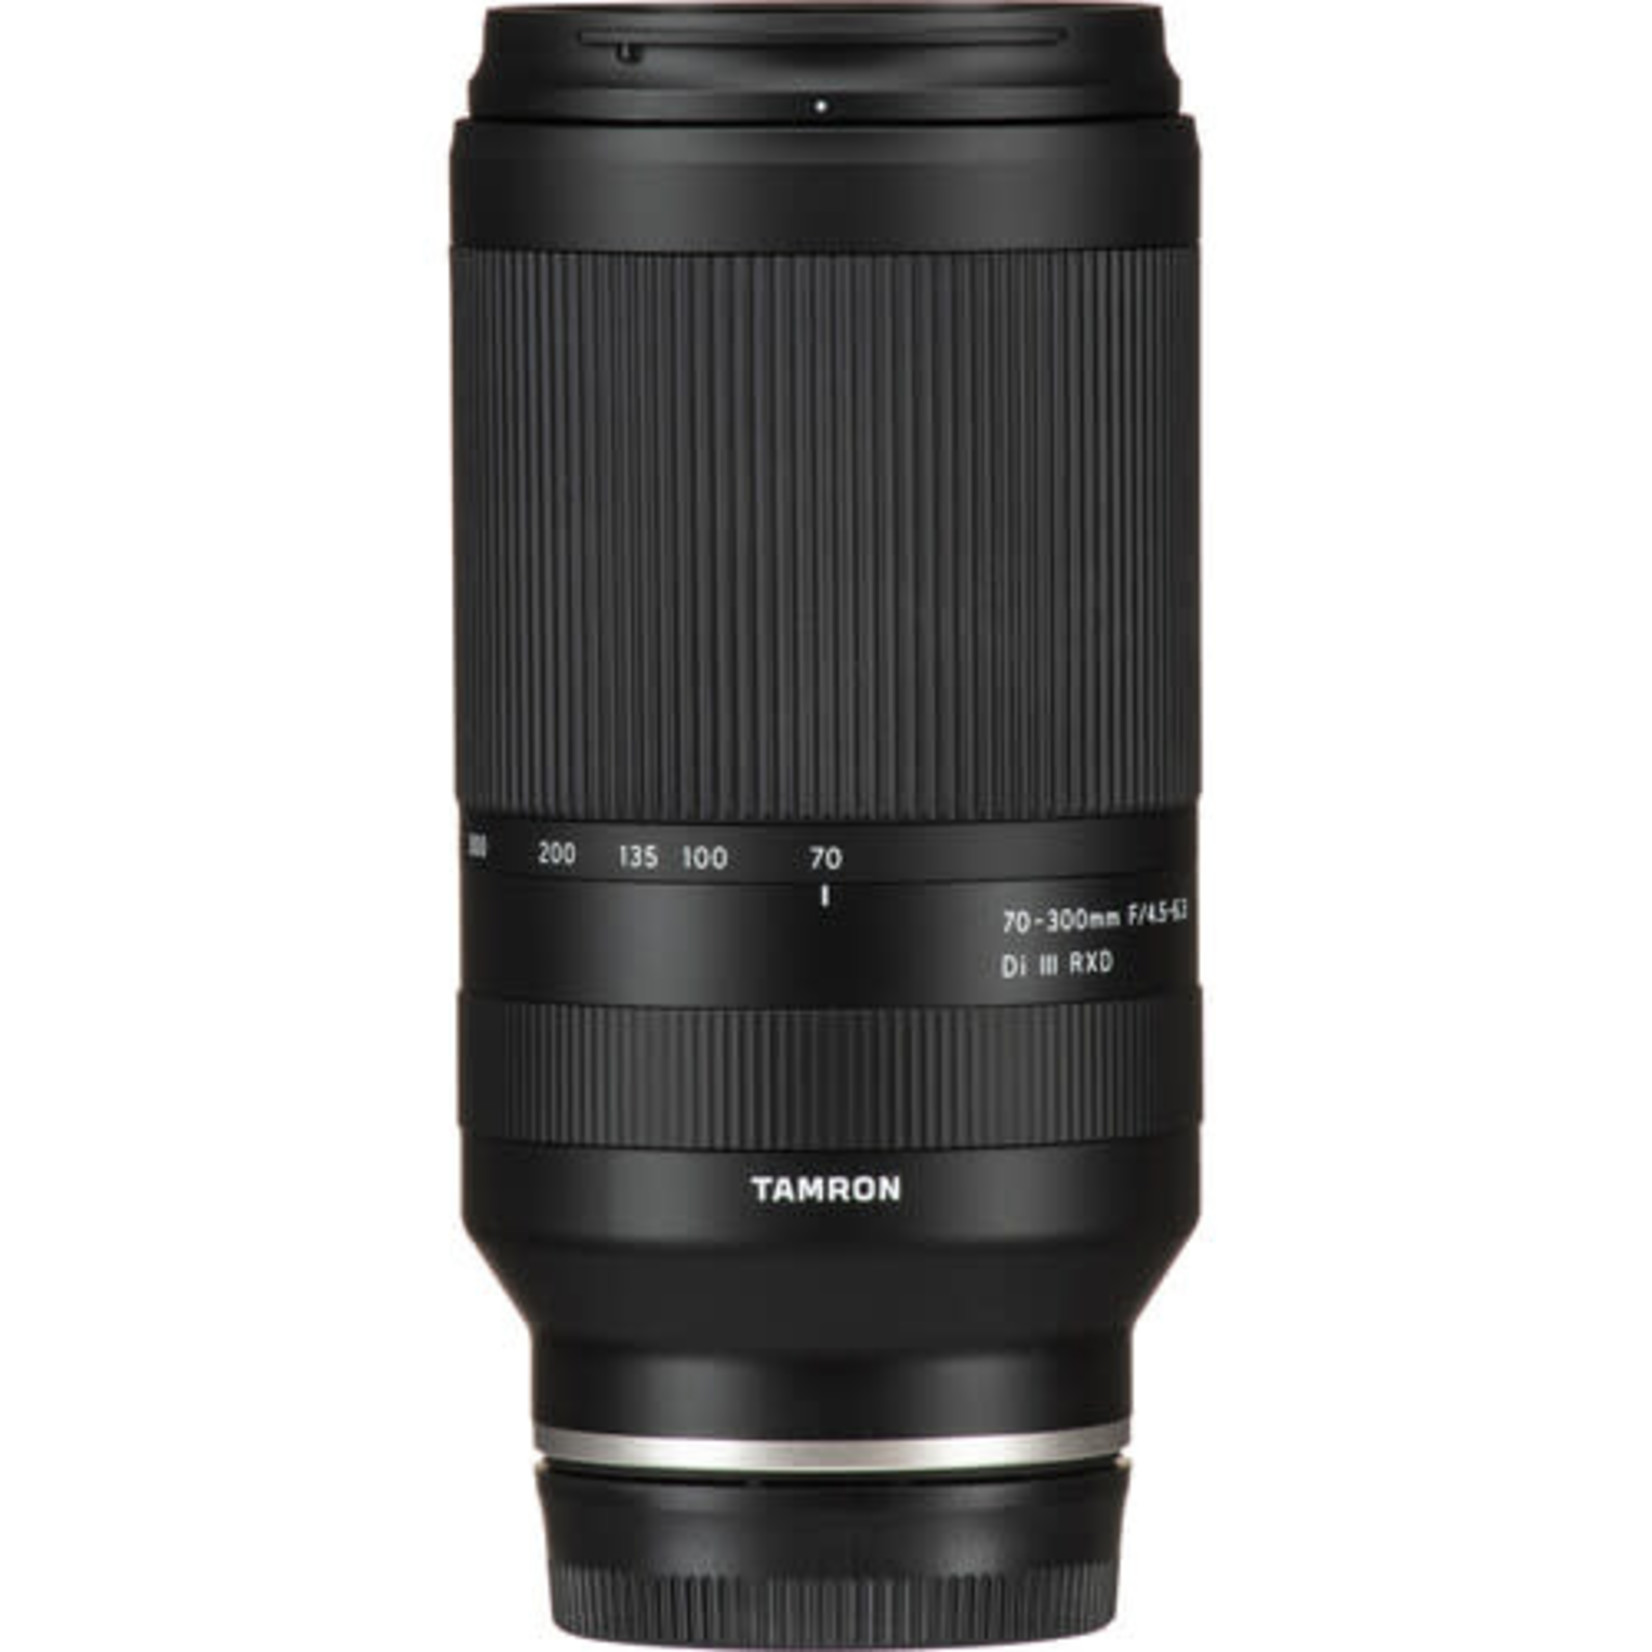 Tamron Tamron 70-300mm f/4.5-6.3 Di III RXD Lens for Sony E